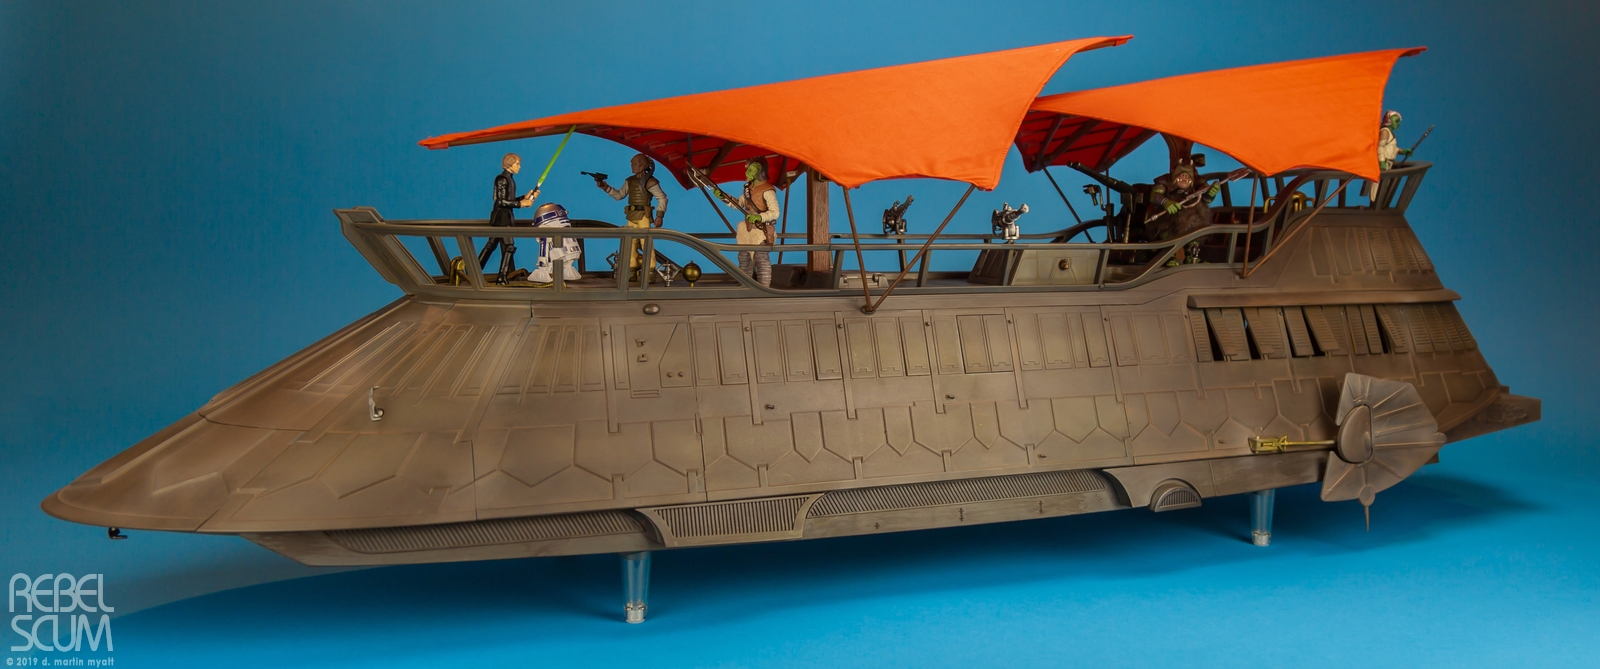 Hasbro The Vintage Collection Jabbas Sail Barge The Khetanna